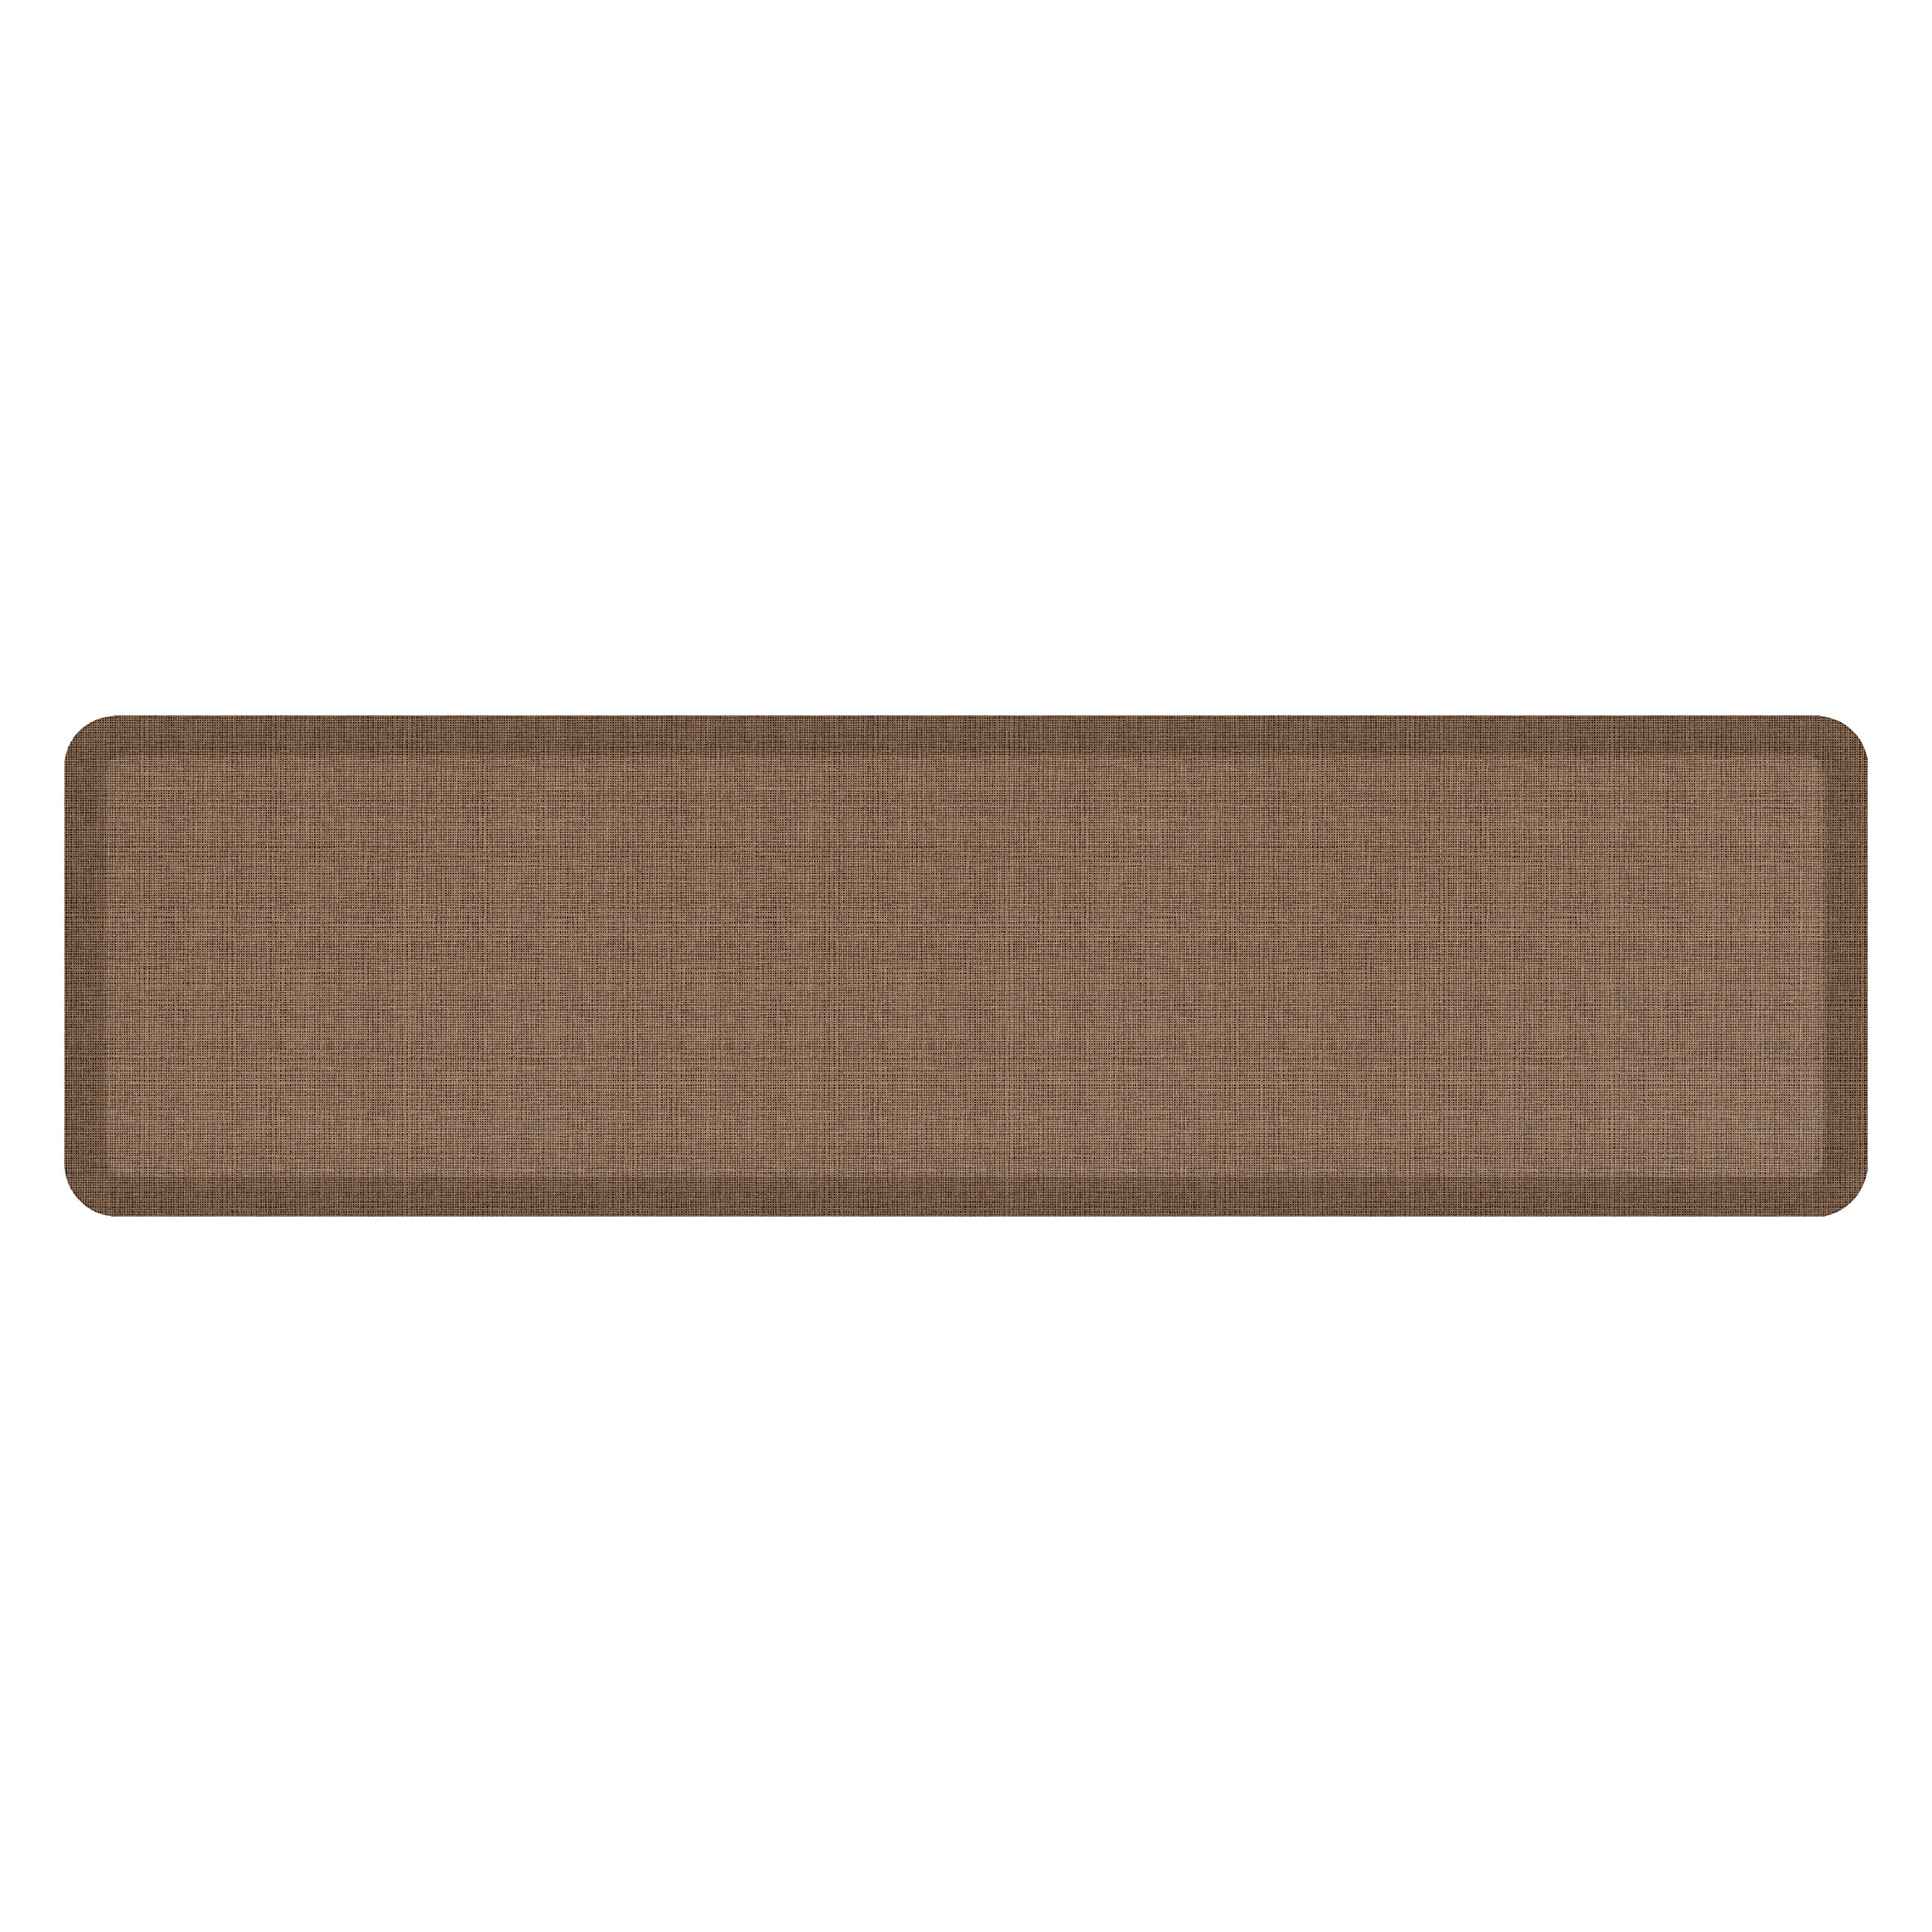 "NewLife by GelPro Anti-Fatigue Designer Comfort Kitchen Floor Mat, 20x72'', Tweed Light Walnut Stain Resistant Surface with 3/4"" Thick Ergo-foam Core for Health and Wellness"